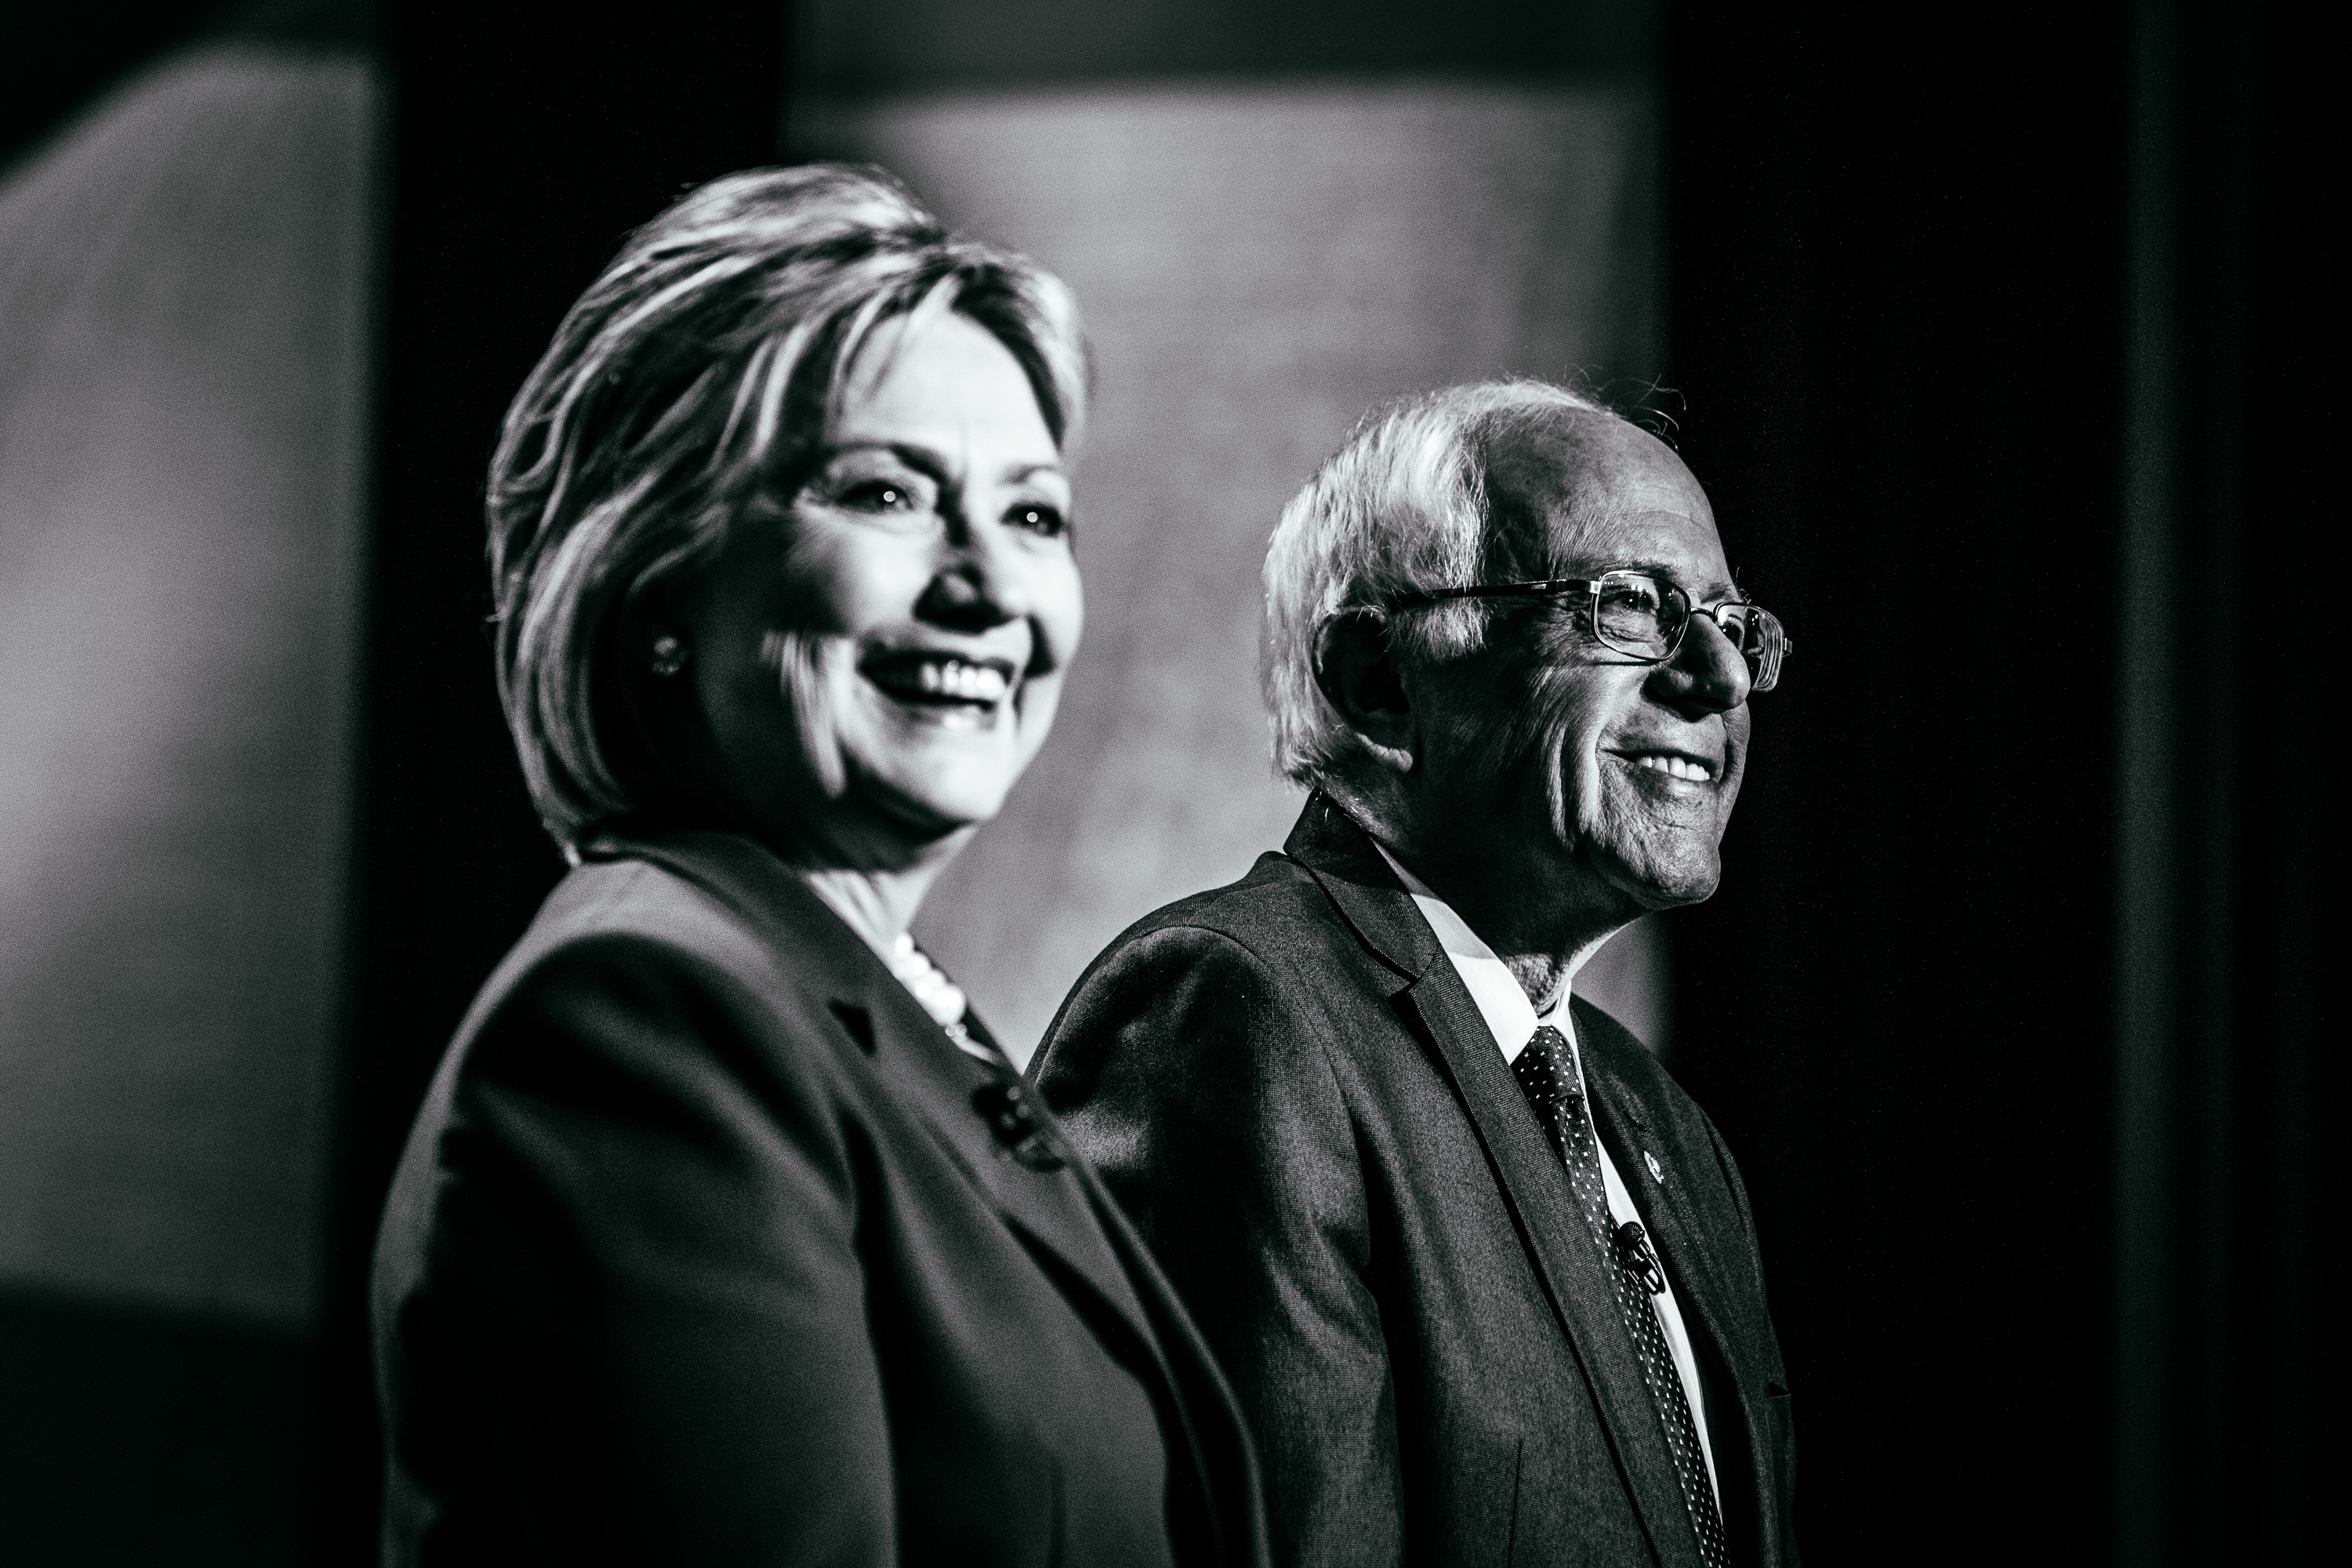 Democratic presidential candidates former Secretary of State Hillary Clinton and U.S. Sen. Bernie Sanders (I-VT) appear at a Democratic debate at the University of New Hampshire on Feb. 4, 2016 in Durham, N.H.